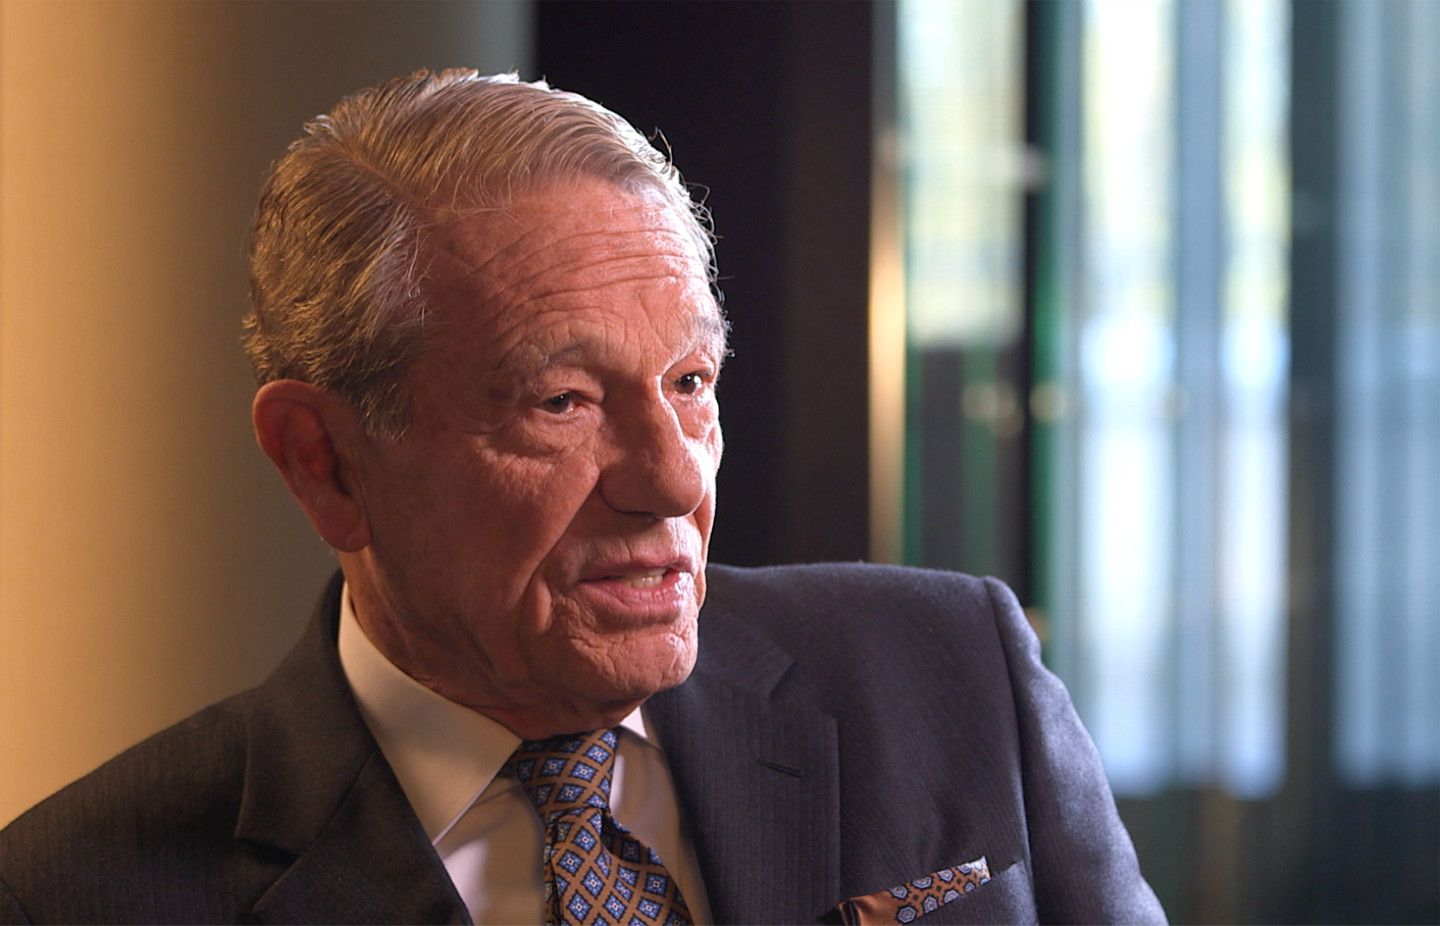 Joaquin Navarro-Valls, interviewee on John Paul 2: Liberating a Continent, the fall of Communism.